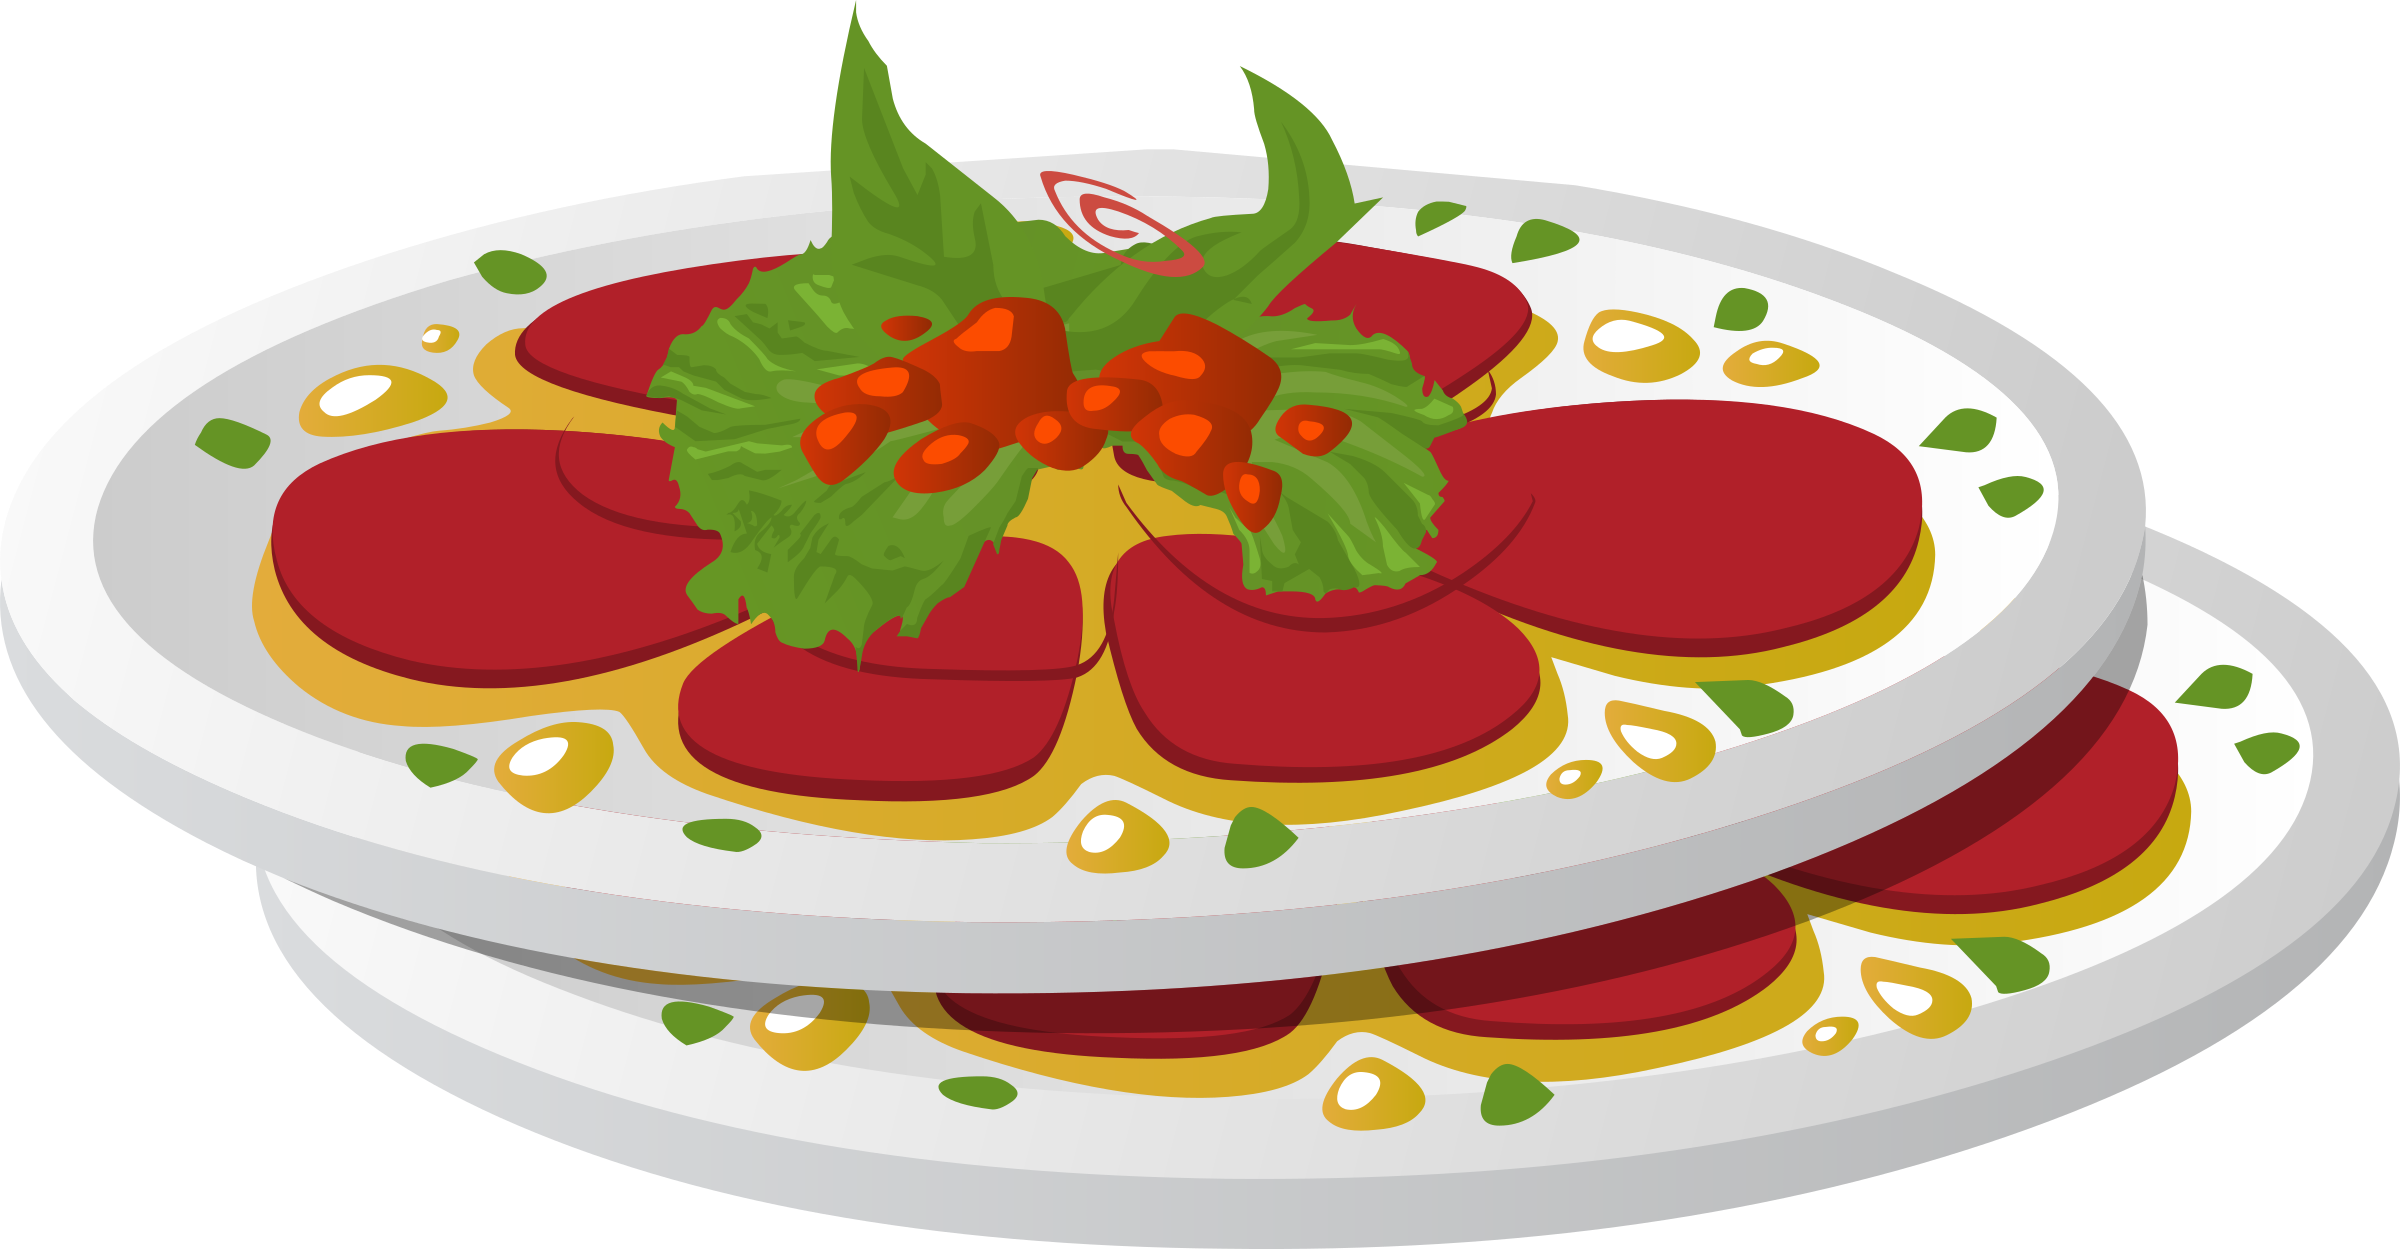 Dish clipart colorful plate.